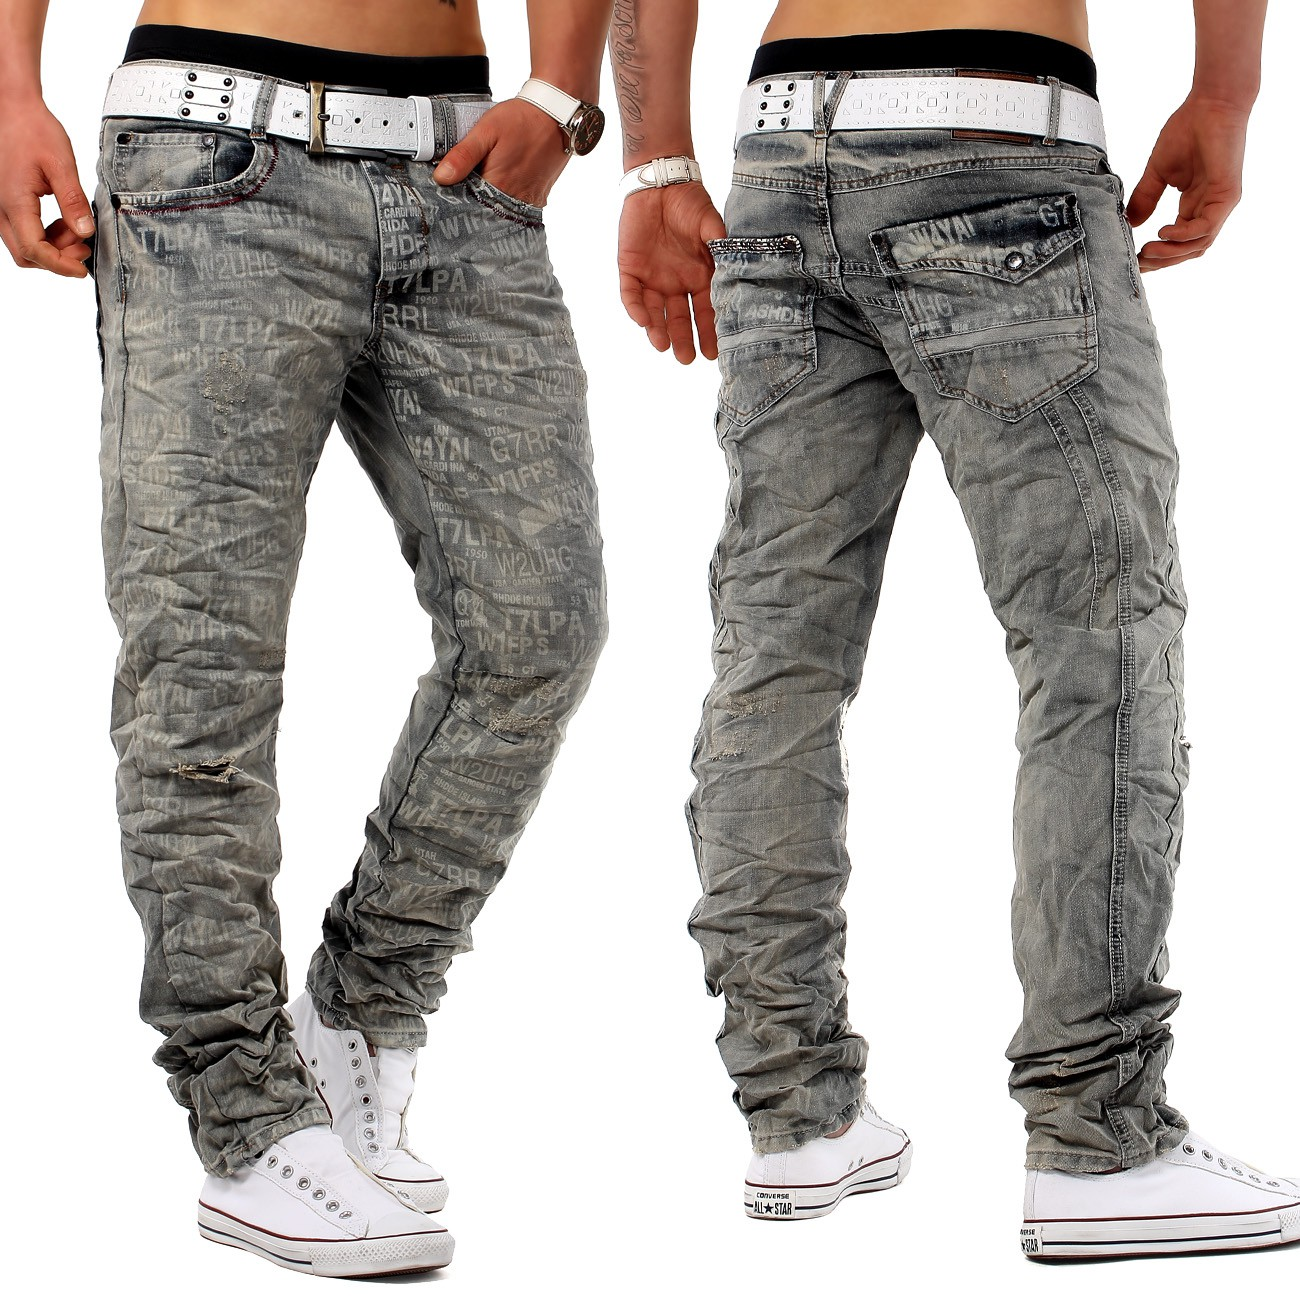 herren marken jeans hose top design clubwear slim fit chick sayyeah knitter plus ebay. Black Bedroom Furniture Sets. Home Design Ideas